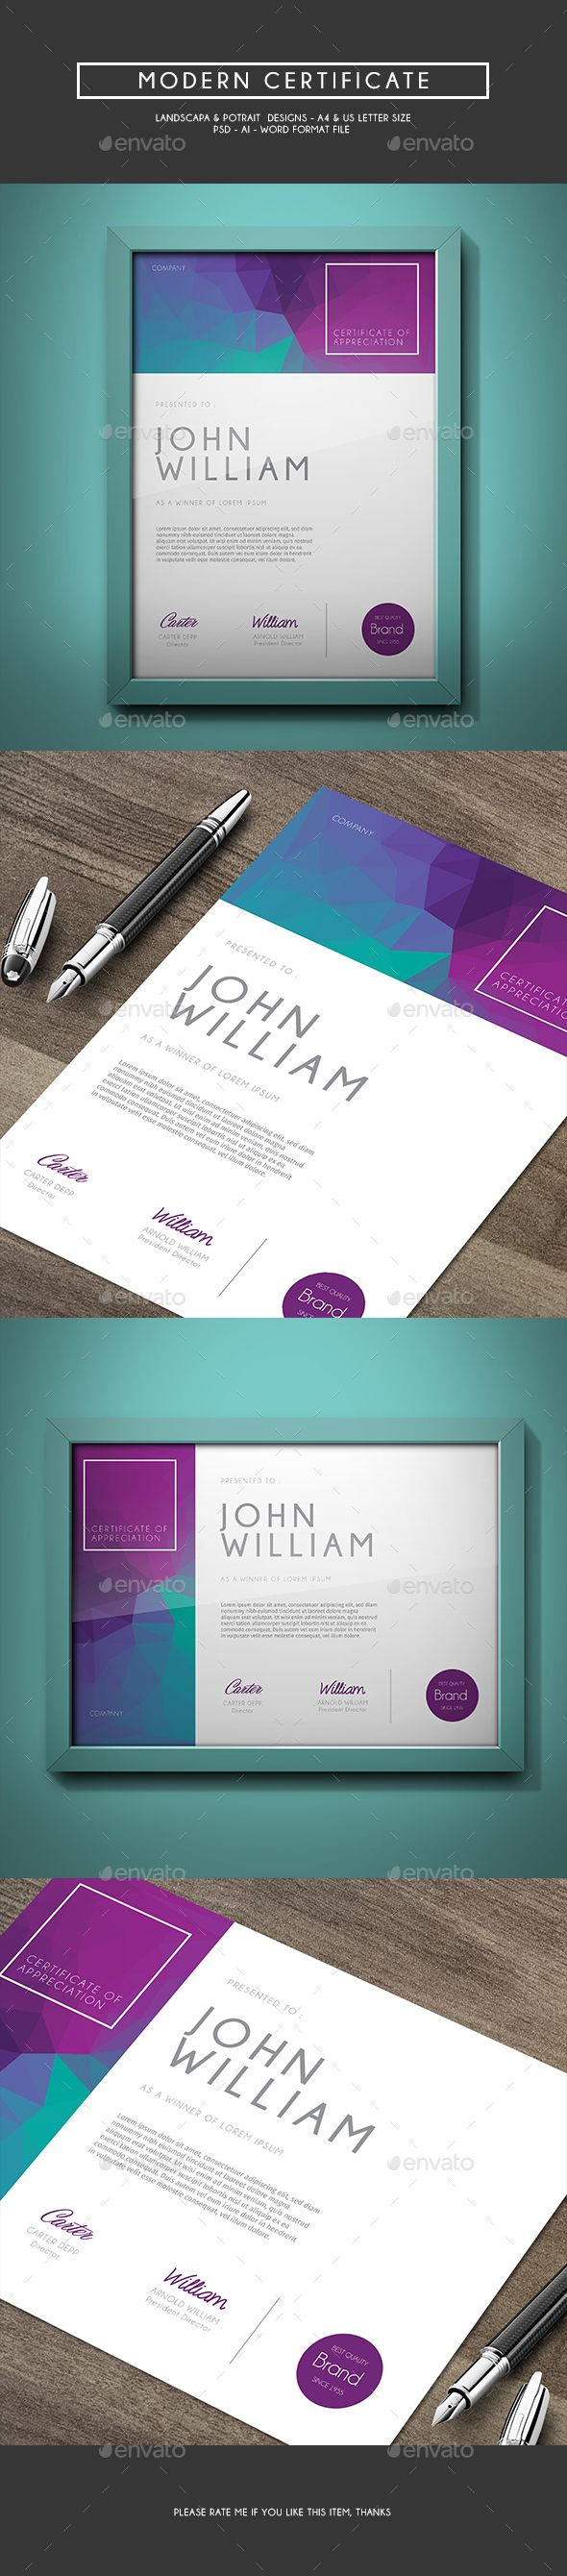 Modern Certificate Template PSD, Vector AI #design Download: http://graphicriver.net/item/modern-certificate/14495488?ref=ksioks